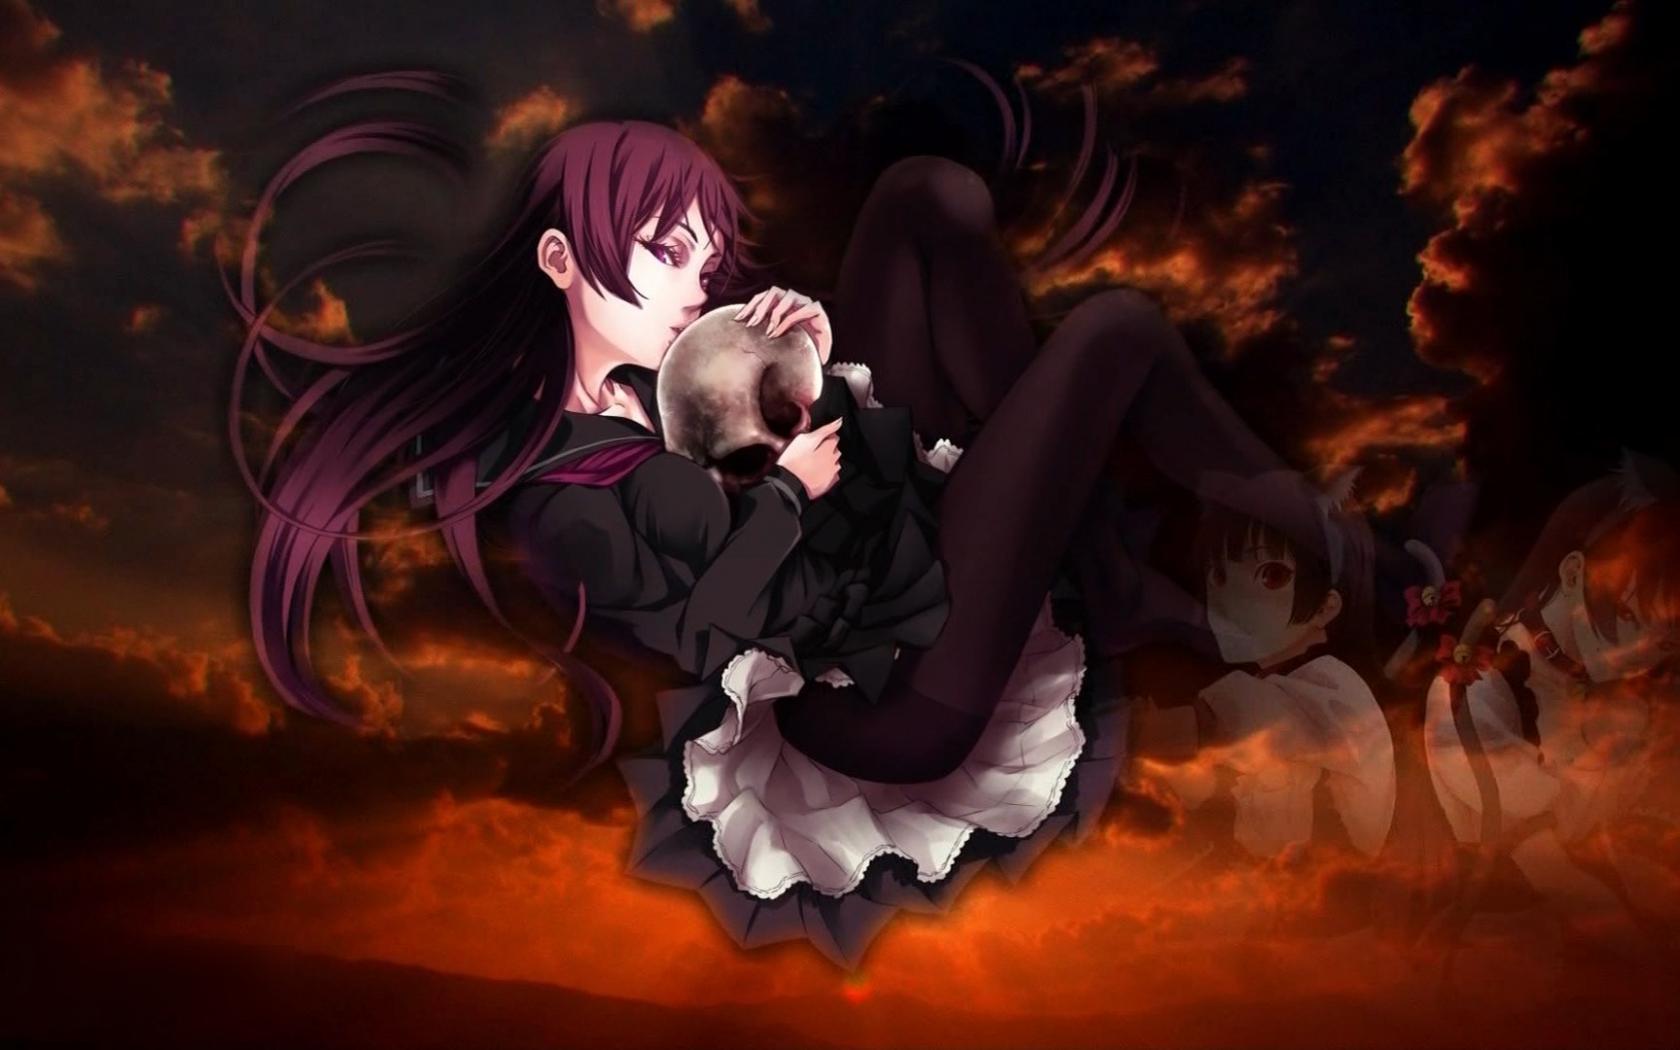 Free Download Otome X Amnesia Posted By Animerdeka On 2nd May 2013